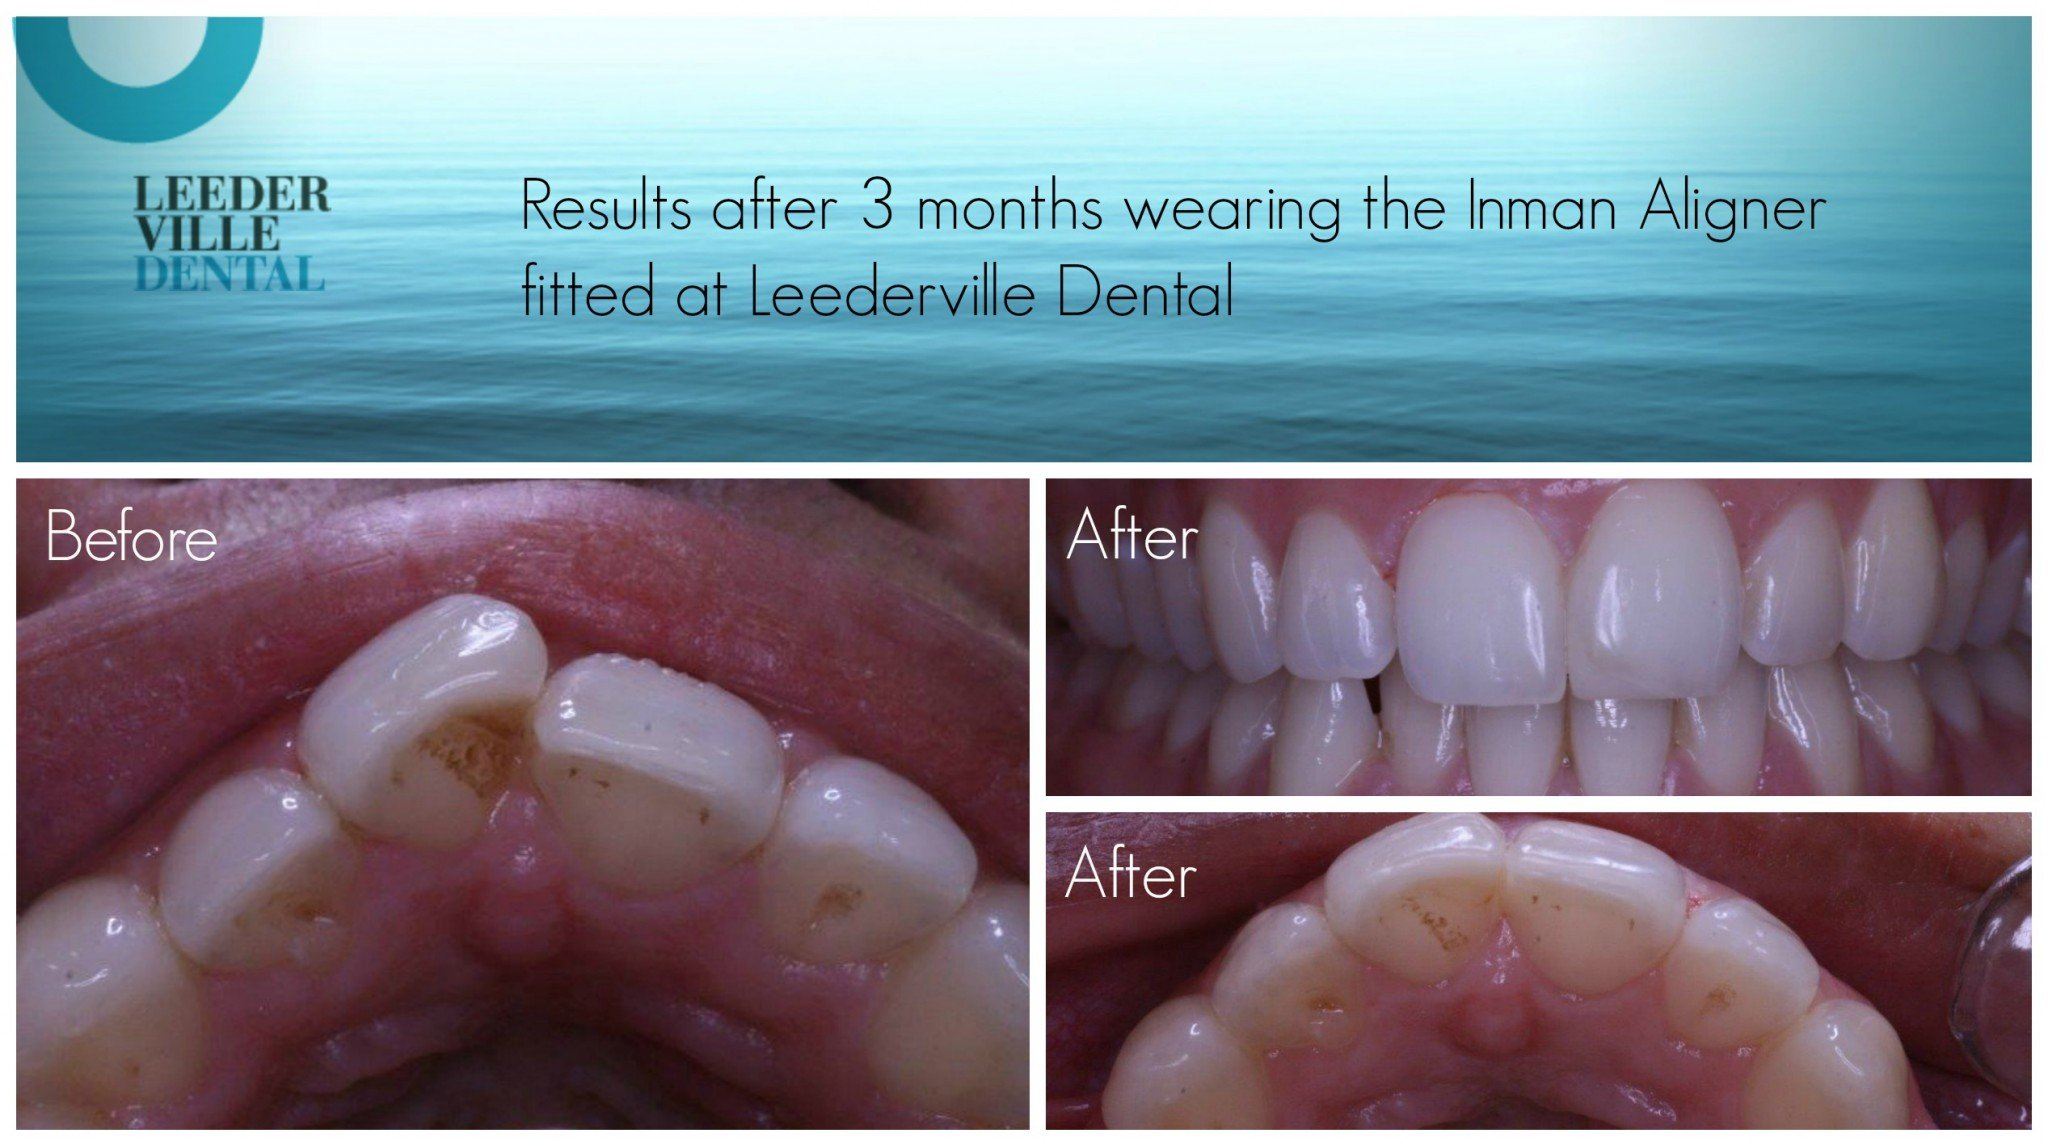 Results after wearing the inman aligner for 3 months after fitting at Leederville Dental. Straighter front teeth